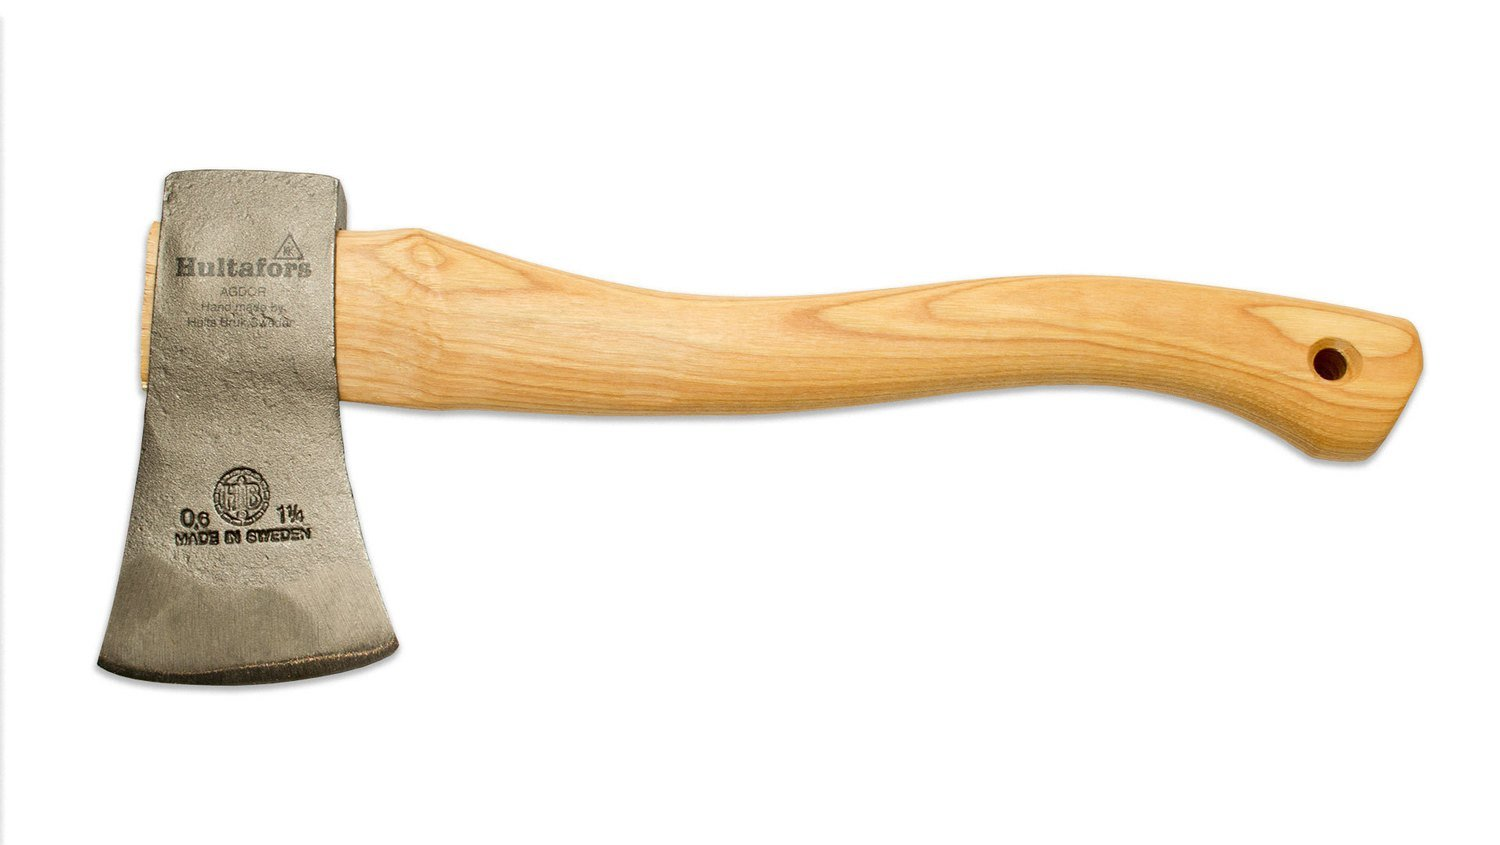 Hatchet H 006 SV (0.6 kg, 15 inch Shaft)